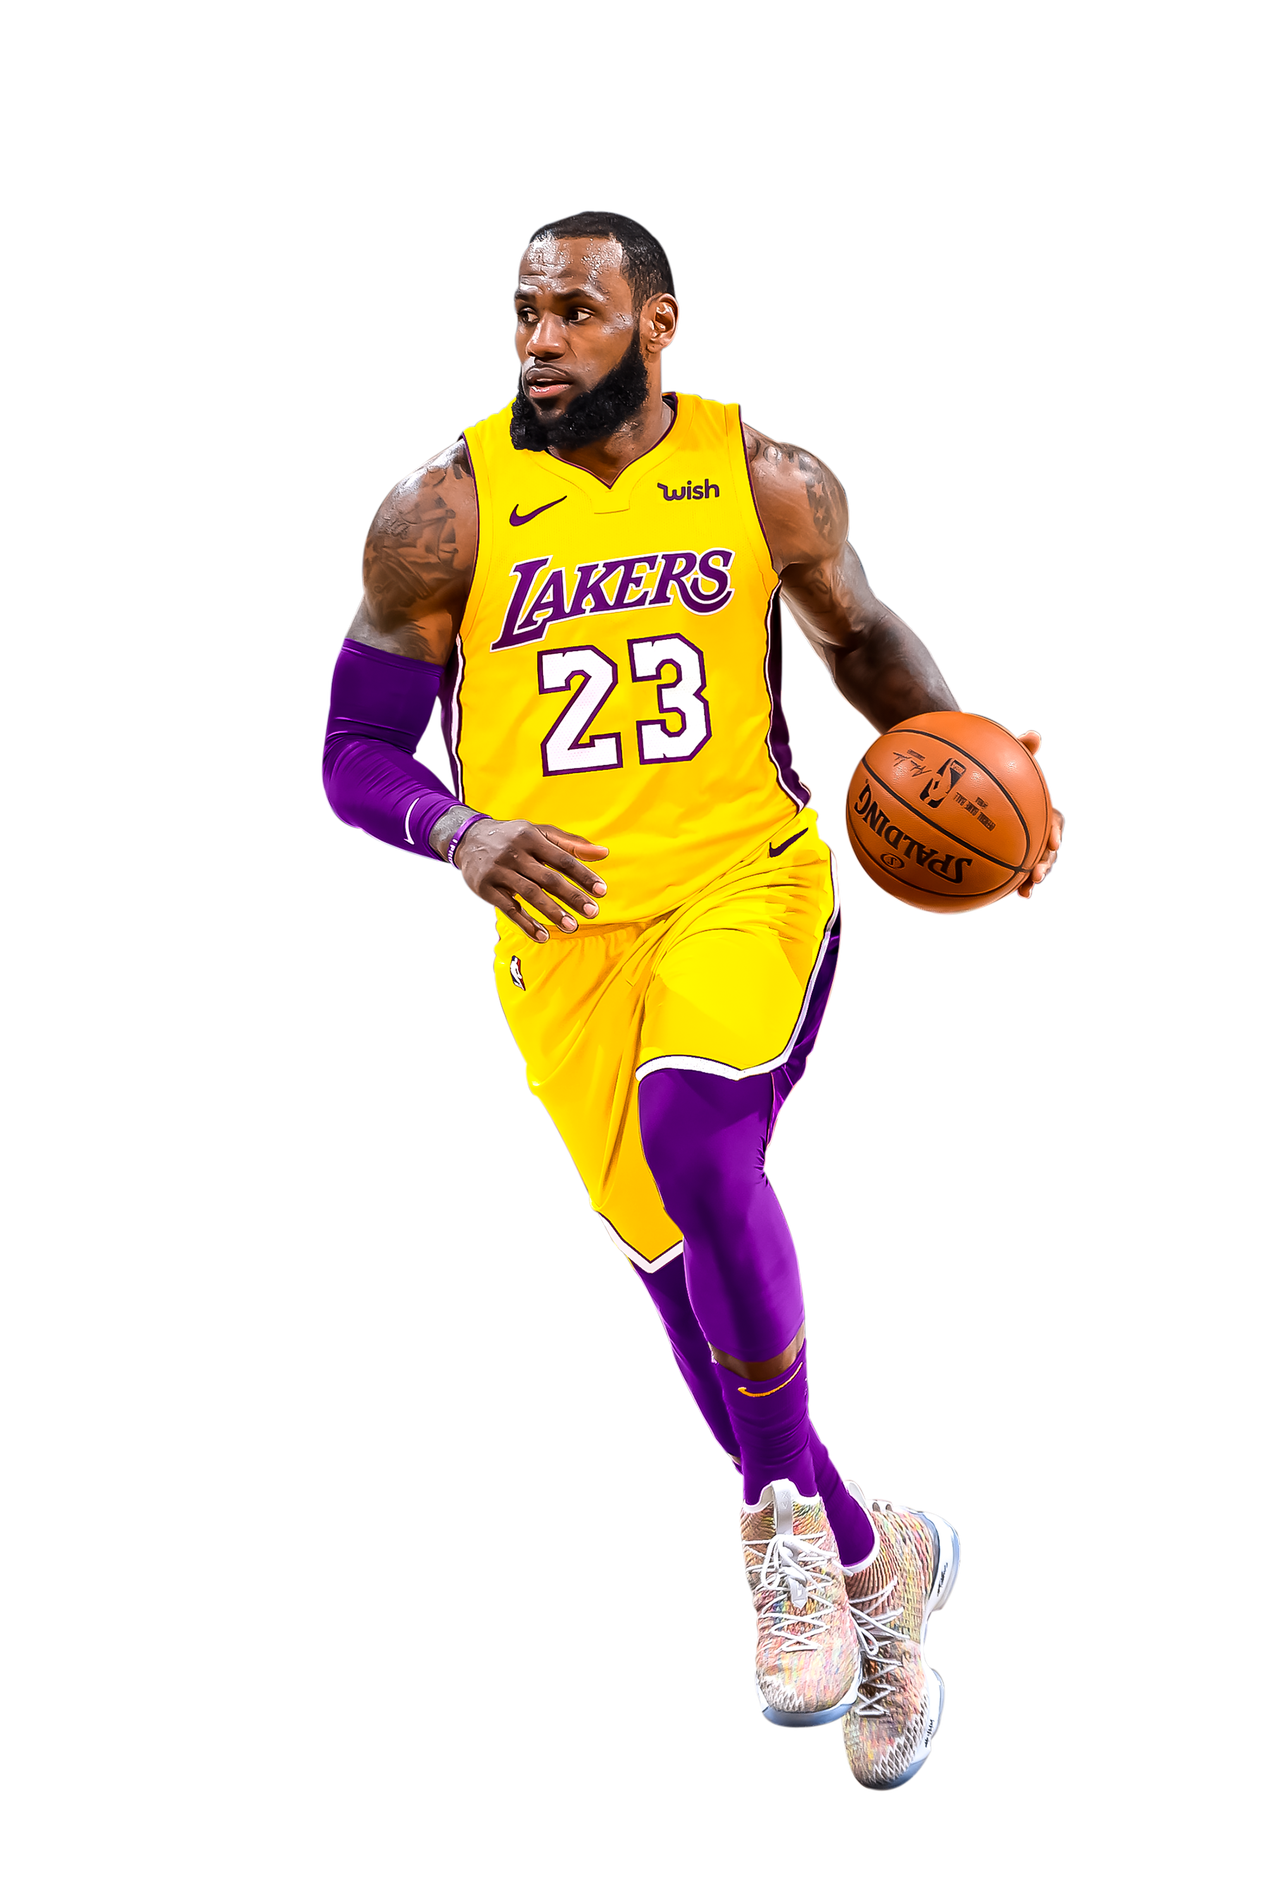 Image Result For Lebron James Laker Png Lebron James Lakers Lebron James Lebron